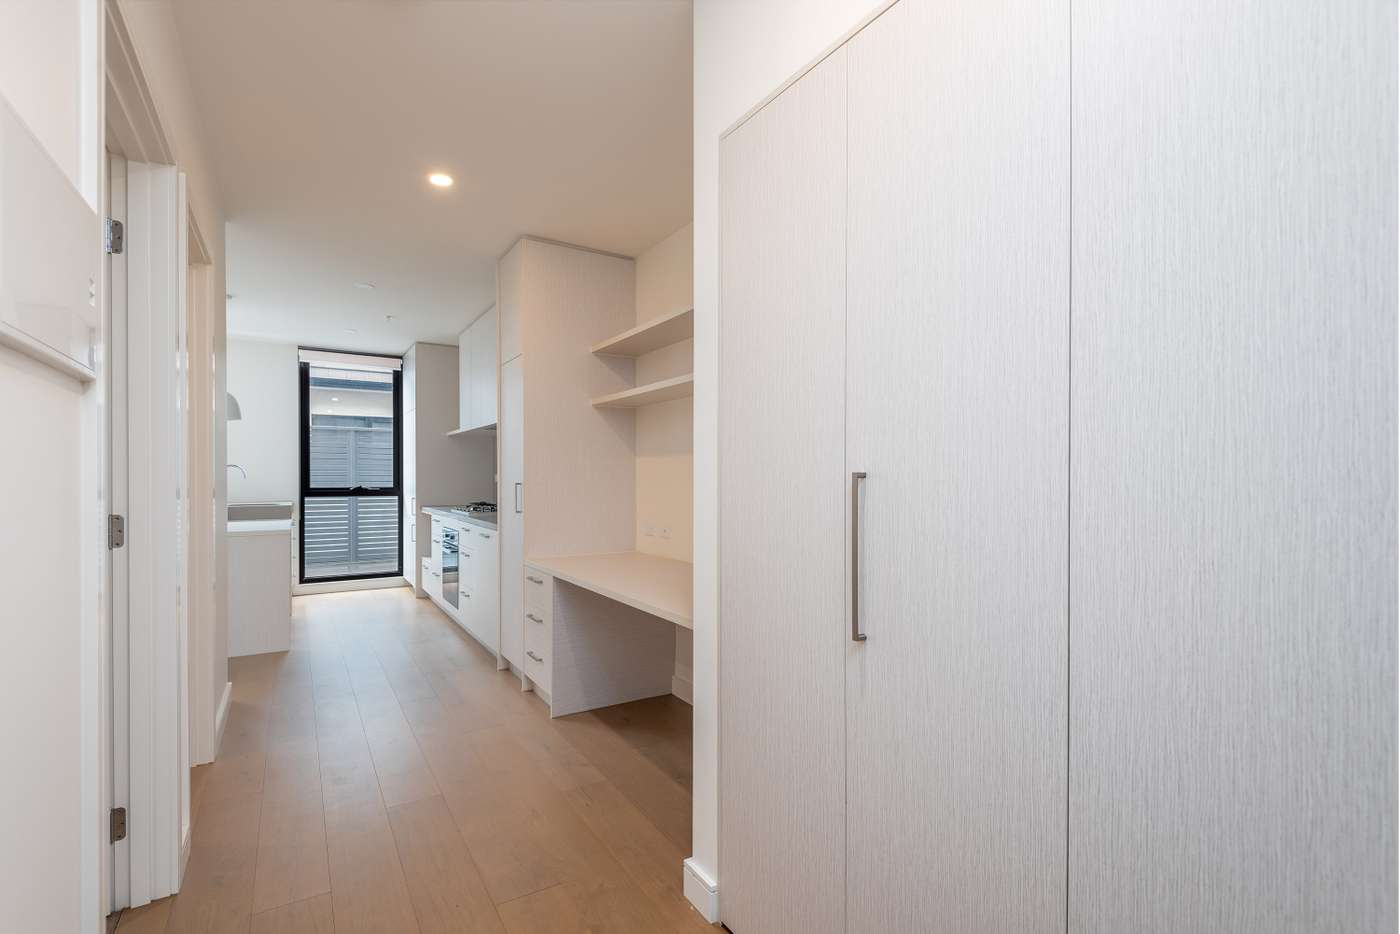 Sixth view of Homely apartment listing, 202/817-819 Centre Road, Bentleigh East VIC 3165